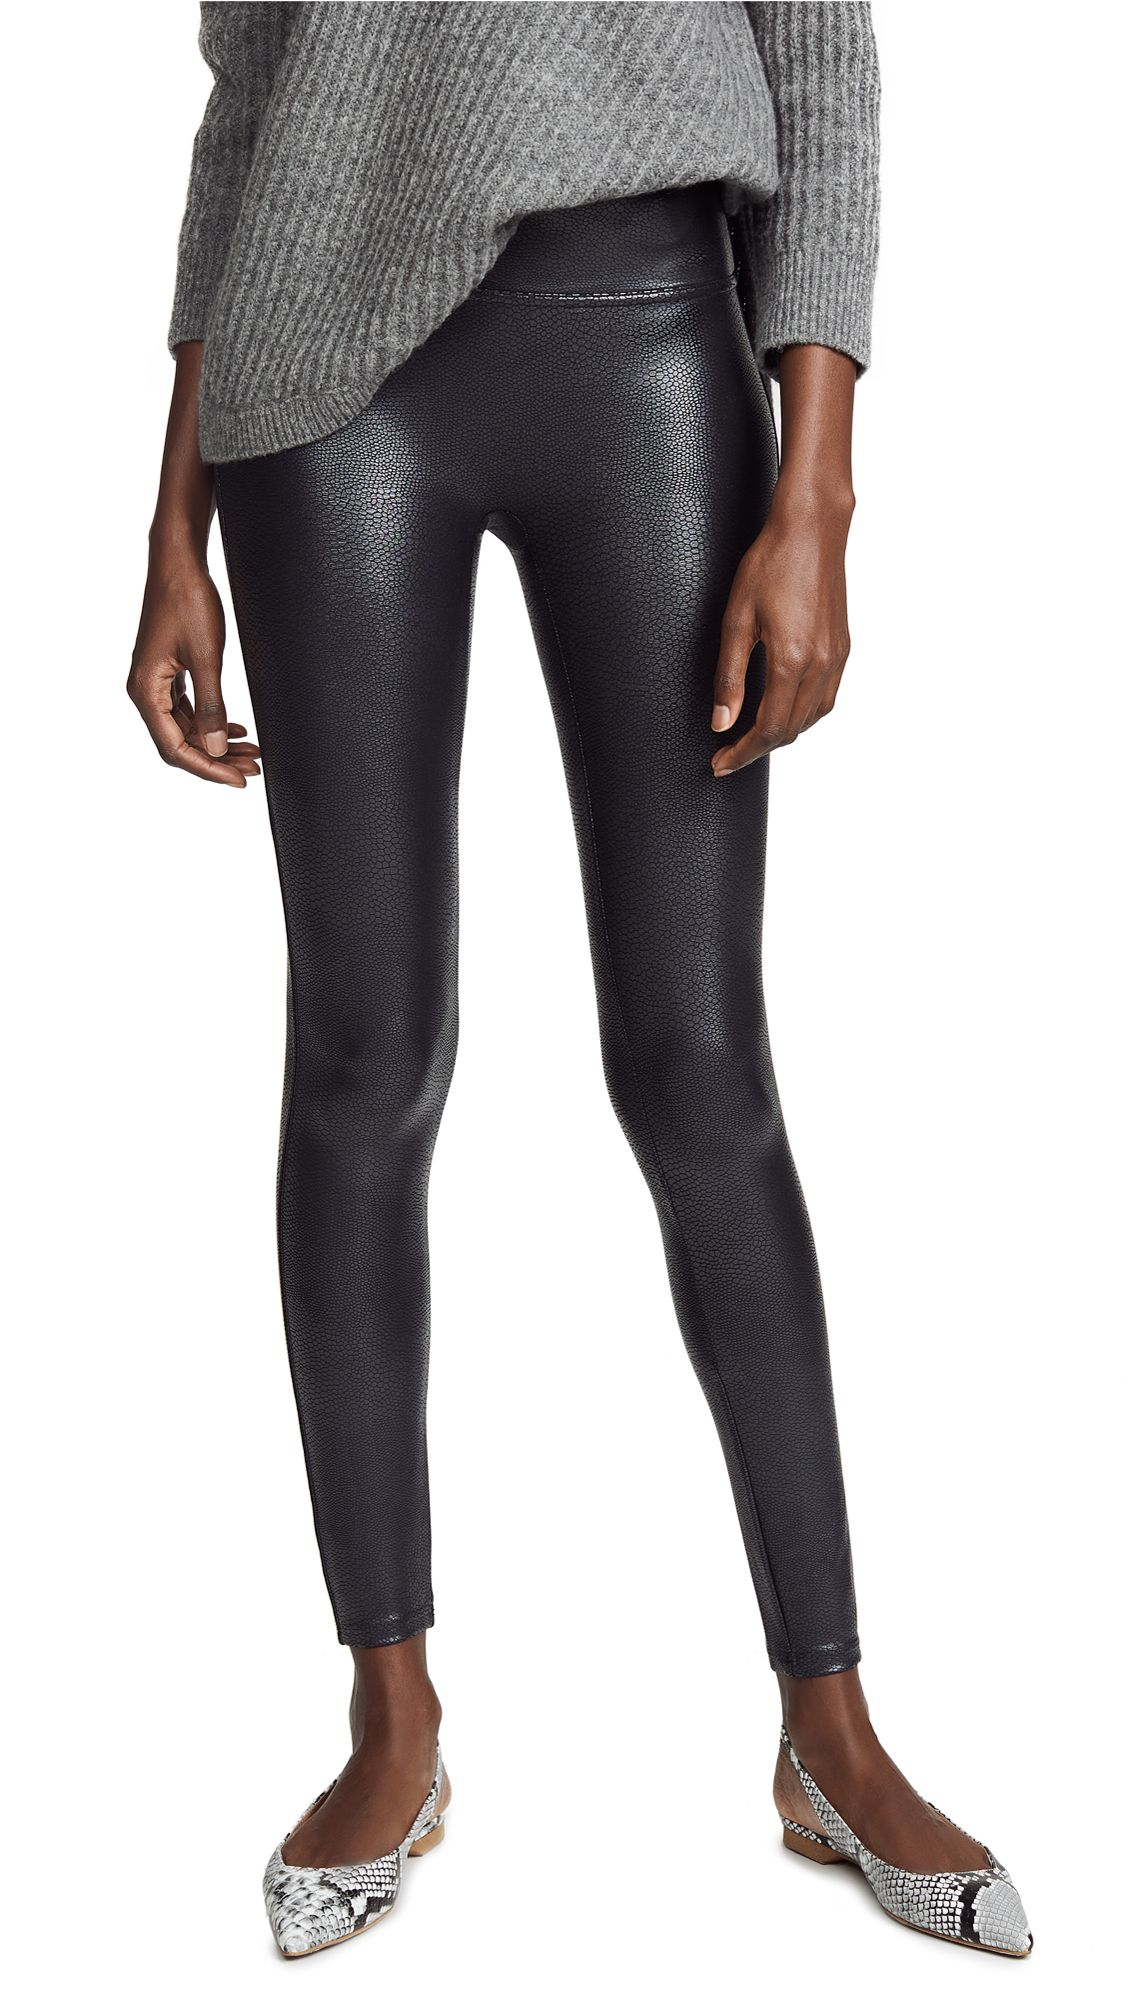 fdeed667d1c68 Faux Leather Pebbled Leggings by SPANX in Pebble Grey | LUX Woman ...